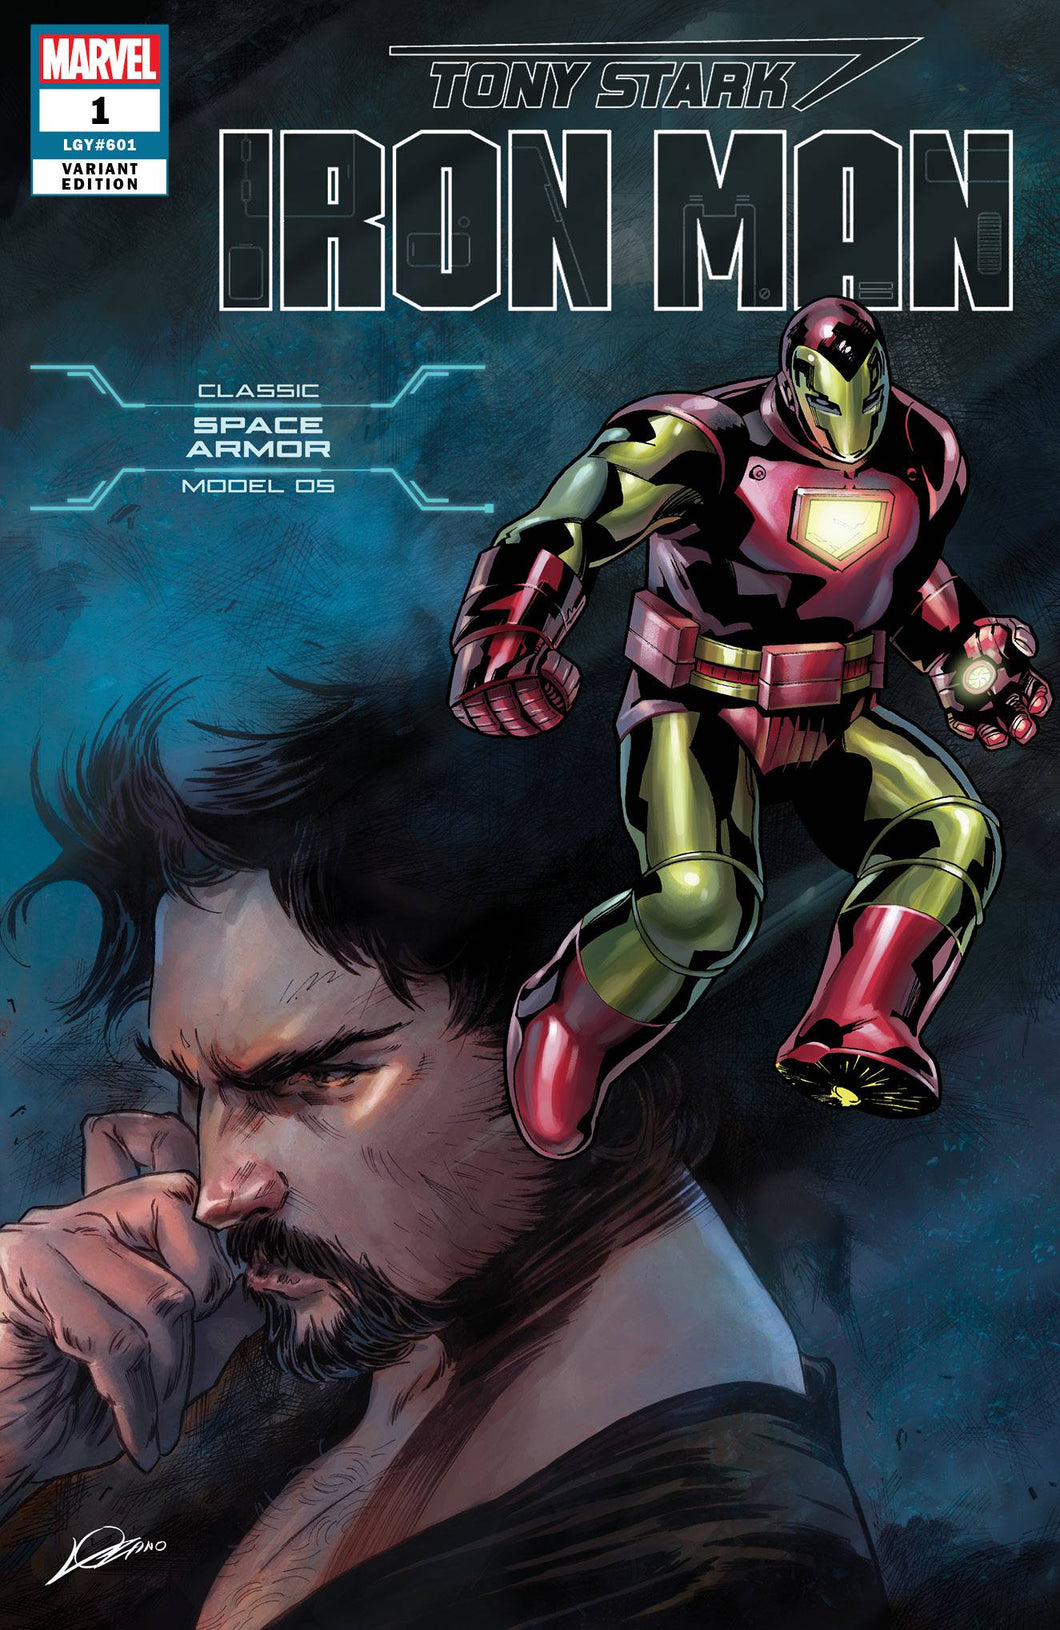 TONY STARK IRON MAN #1 SPACE ARMOR VAR (06/20/2018)